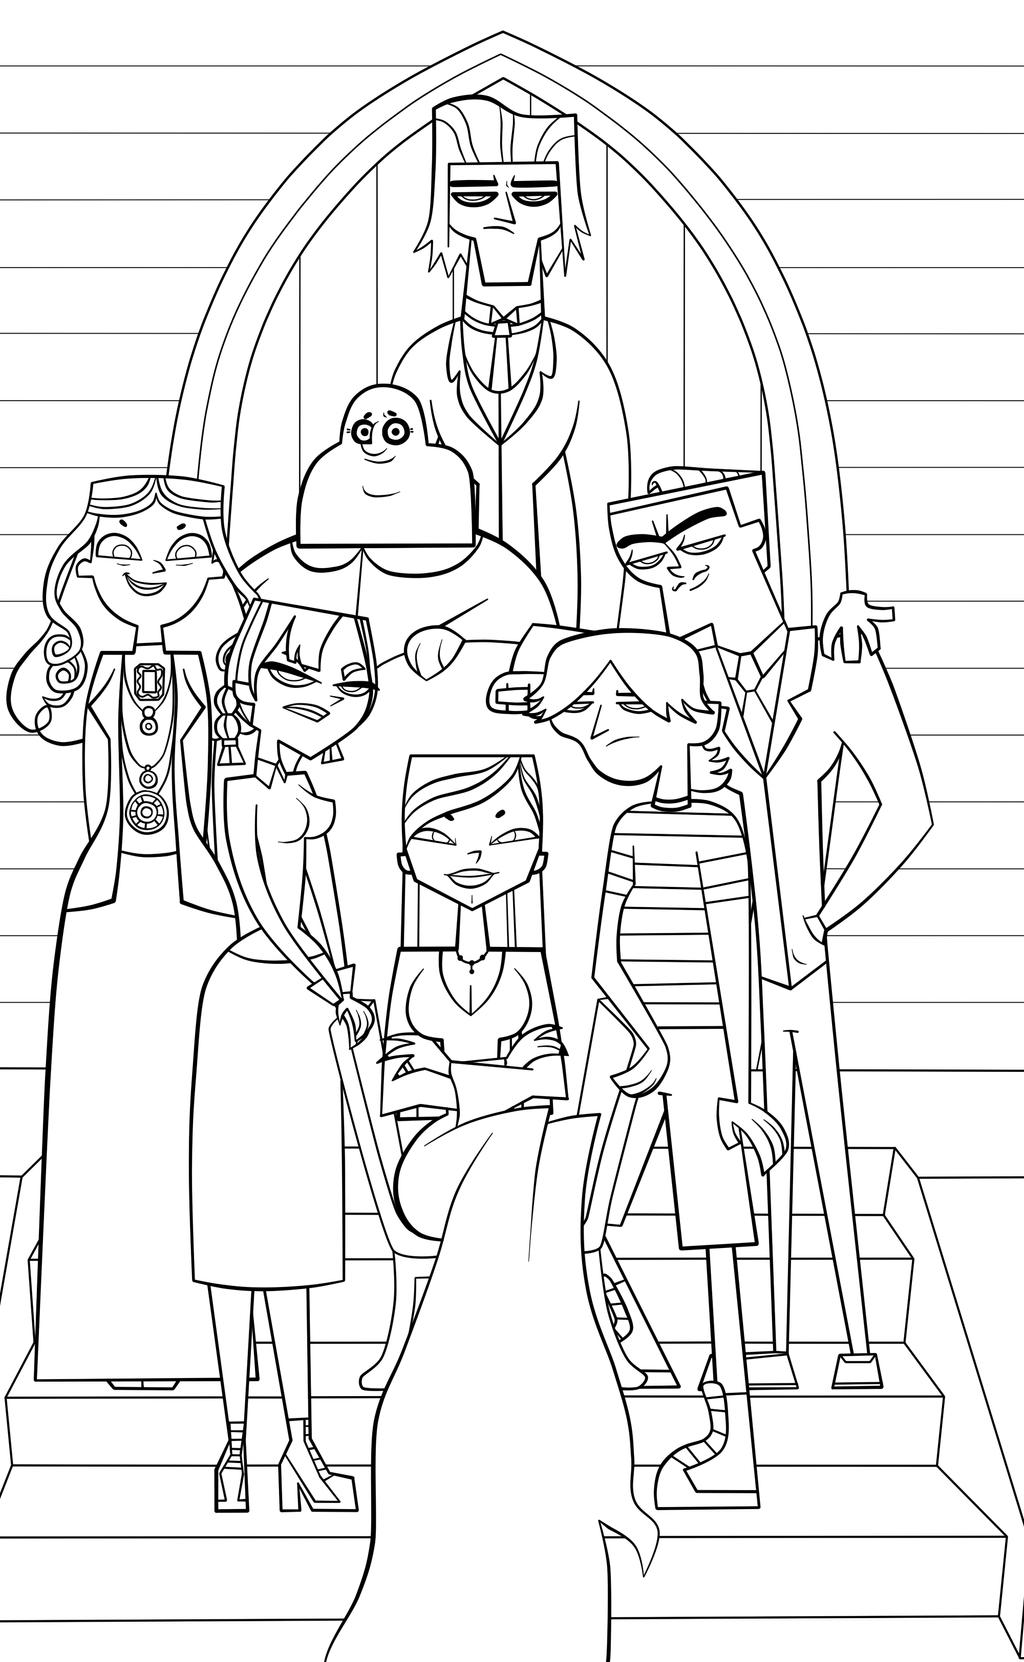 Wednesday Addams Family Coloring Pages Coloring Pages